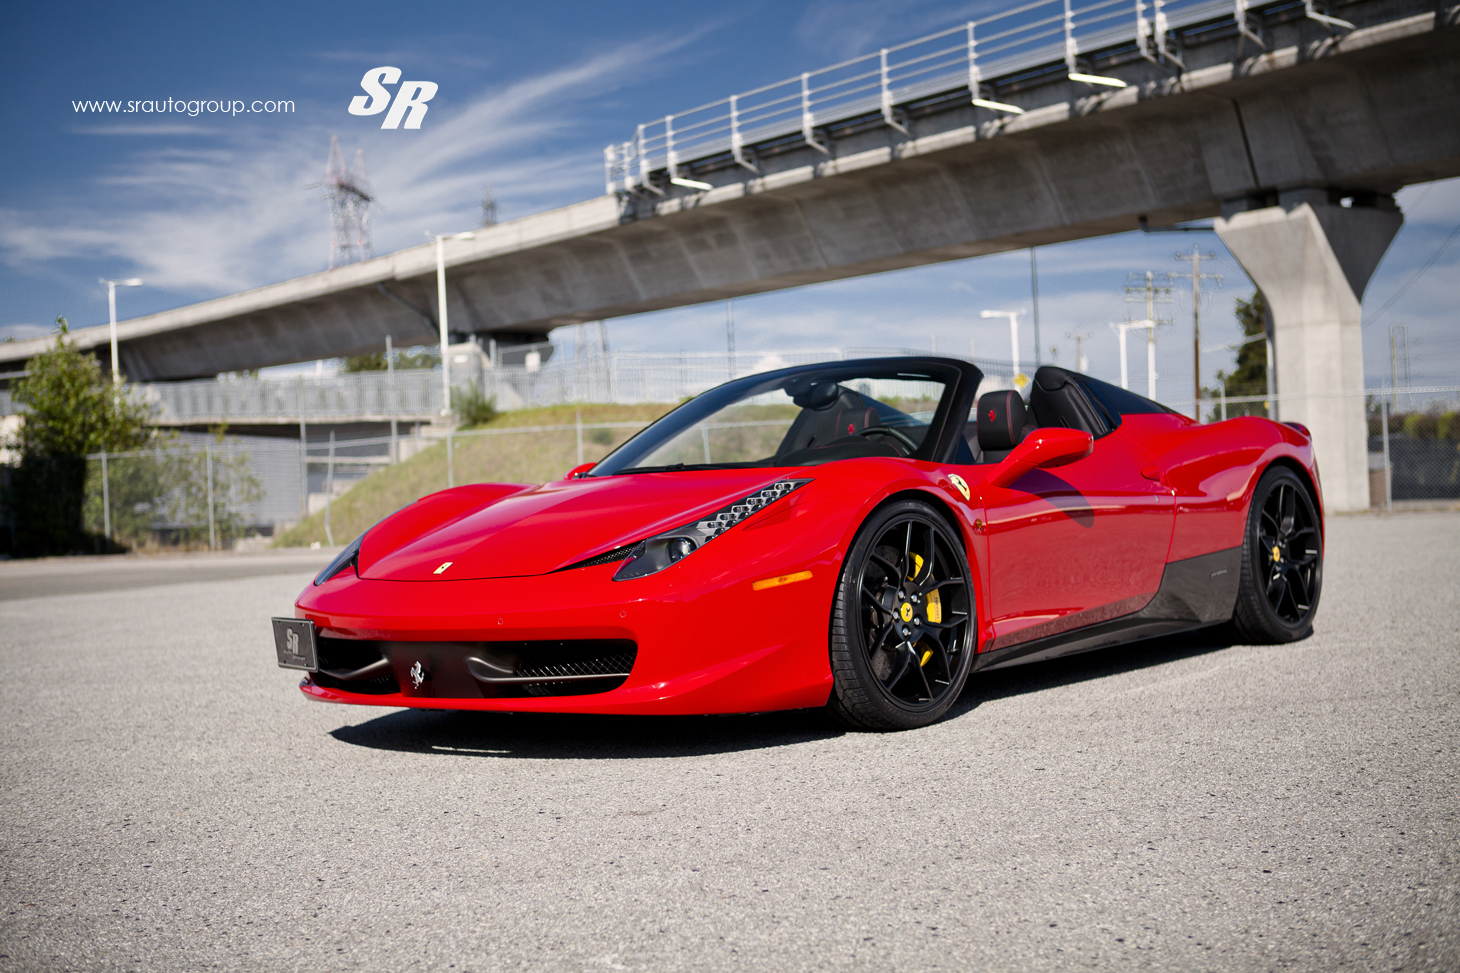 http://s1.cdn.autoevolution.com/images/news/gallery/novitec-rosso-ferrari-458-spider-released-by-sr-auto-photo-gallery_1.jpg